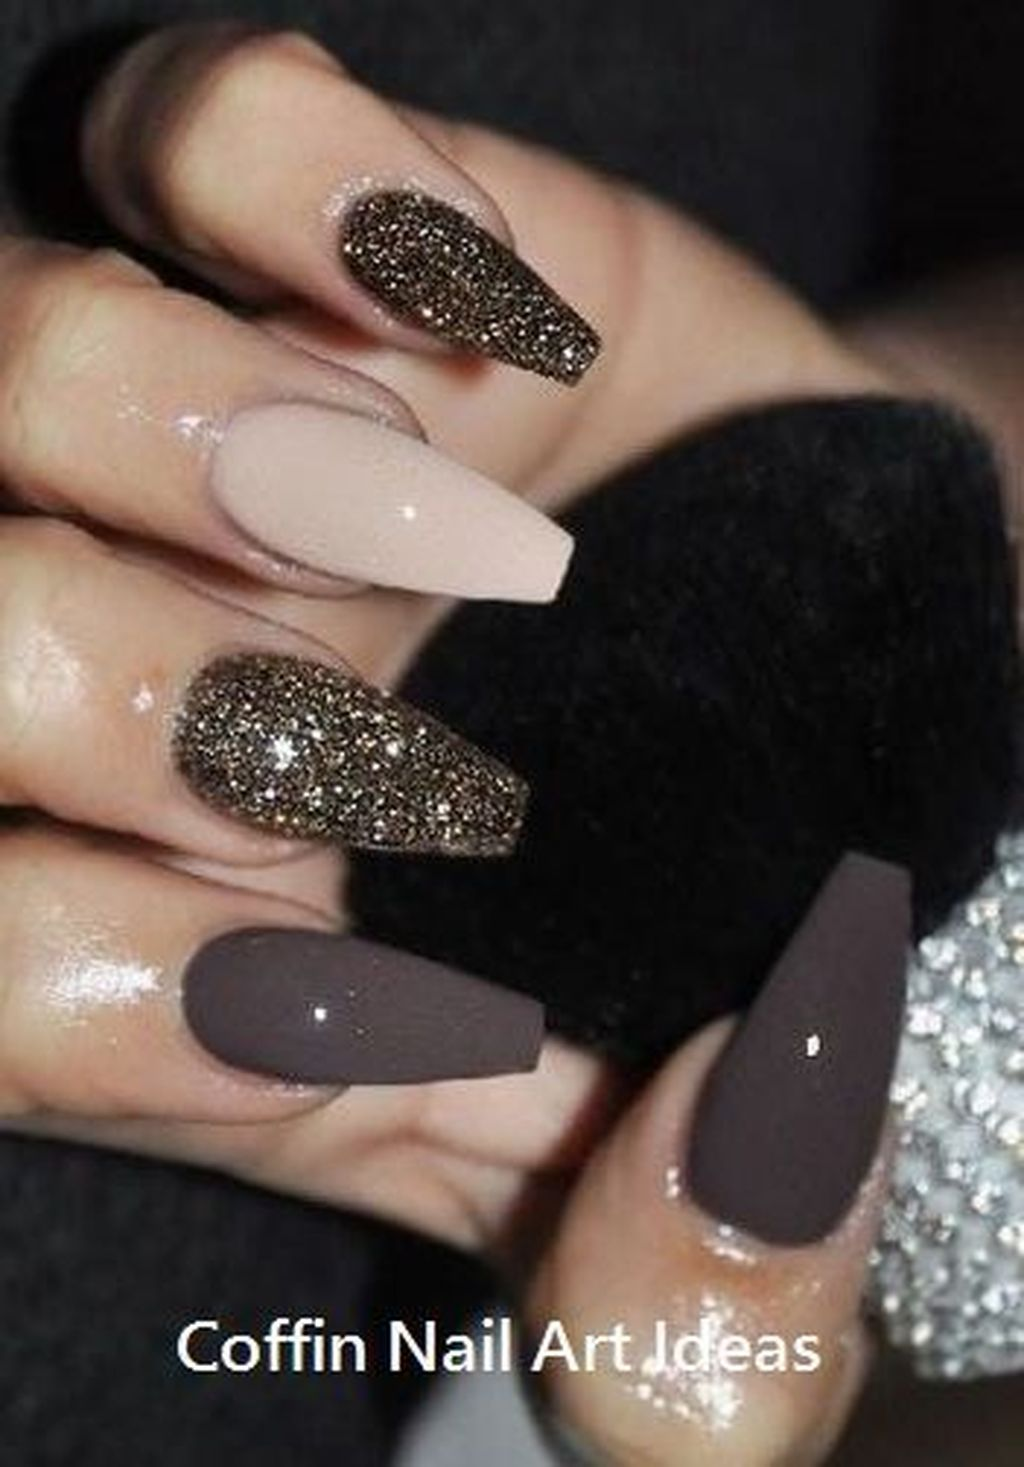 40 Inspiring Winter Nail Art Ideas To Try In 2019 - GLOOFASHION